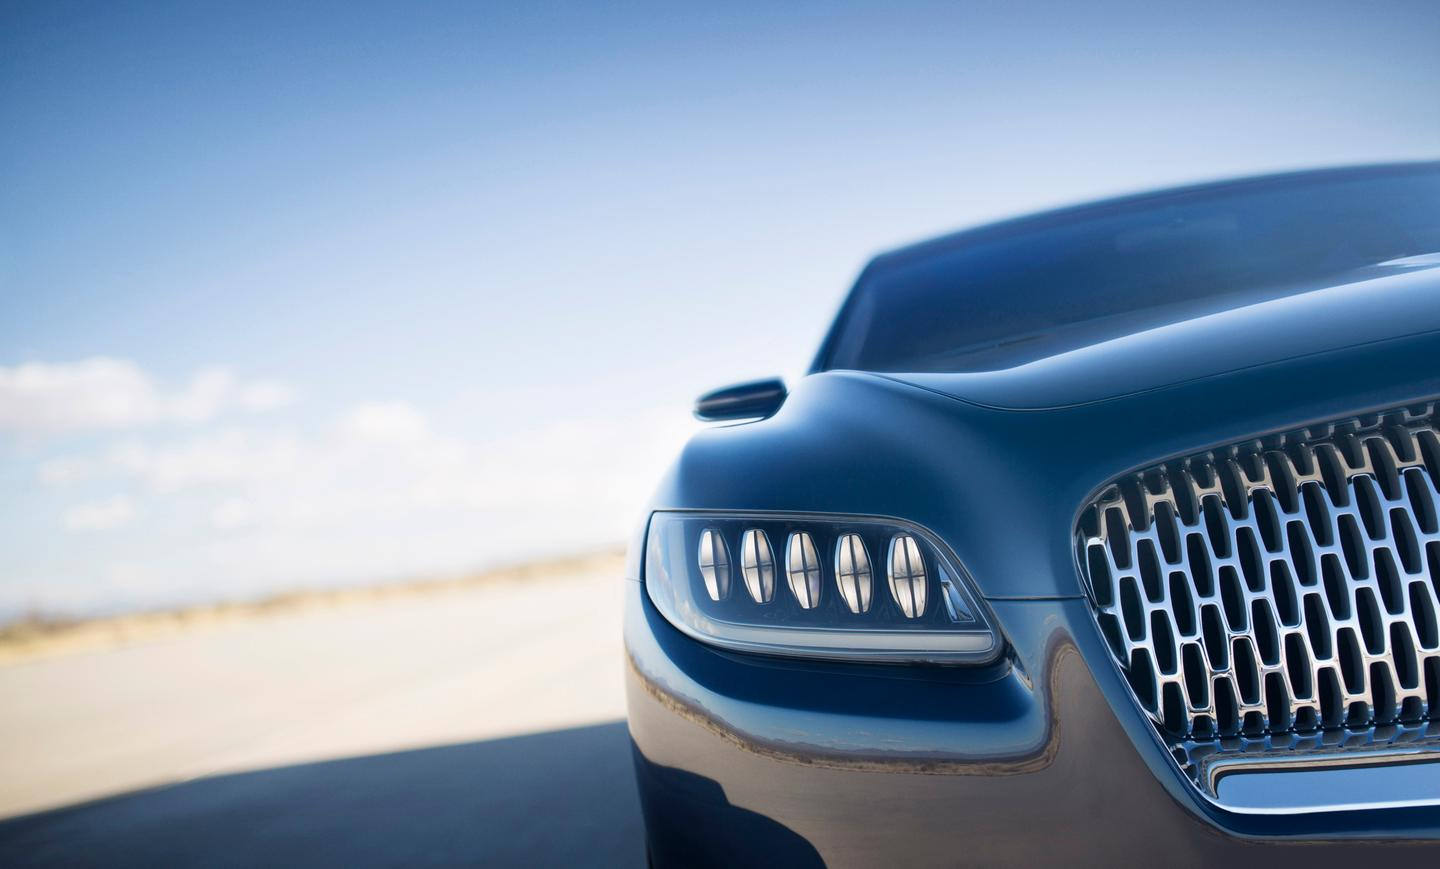 The Continental Concept has a very strong Lincoln identity